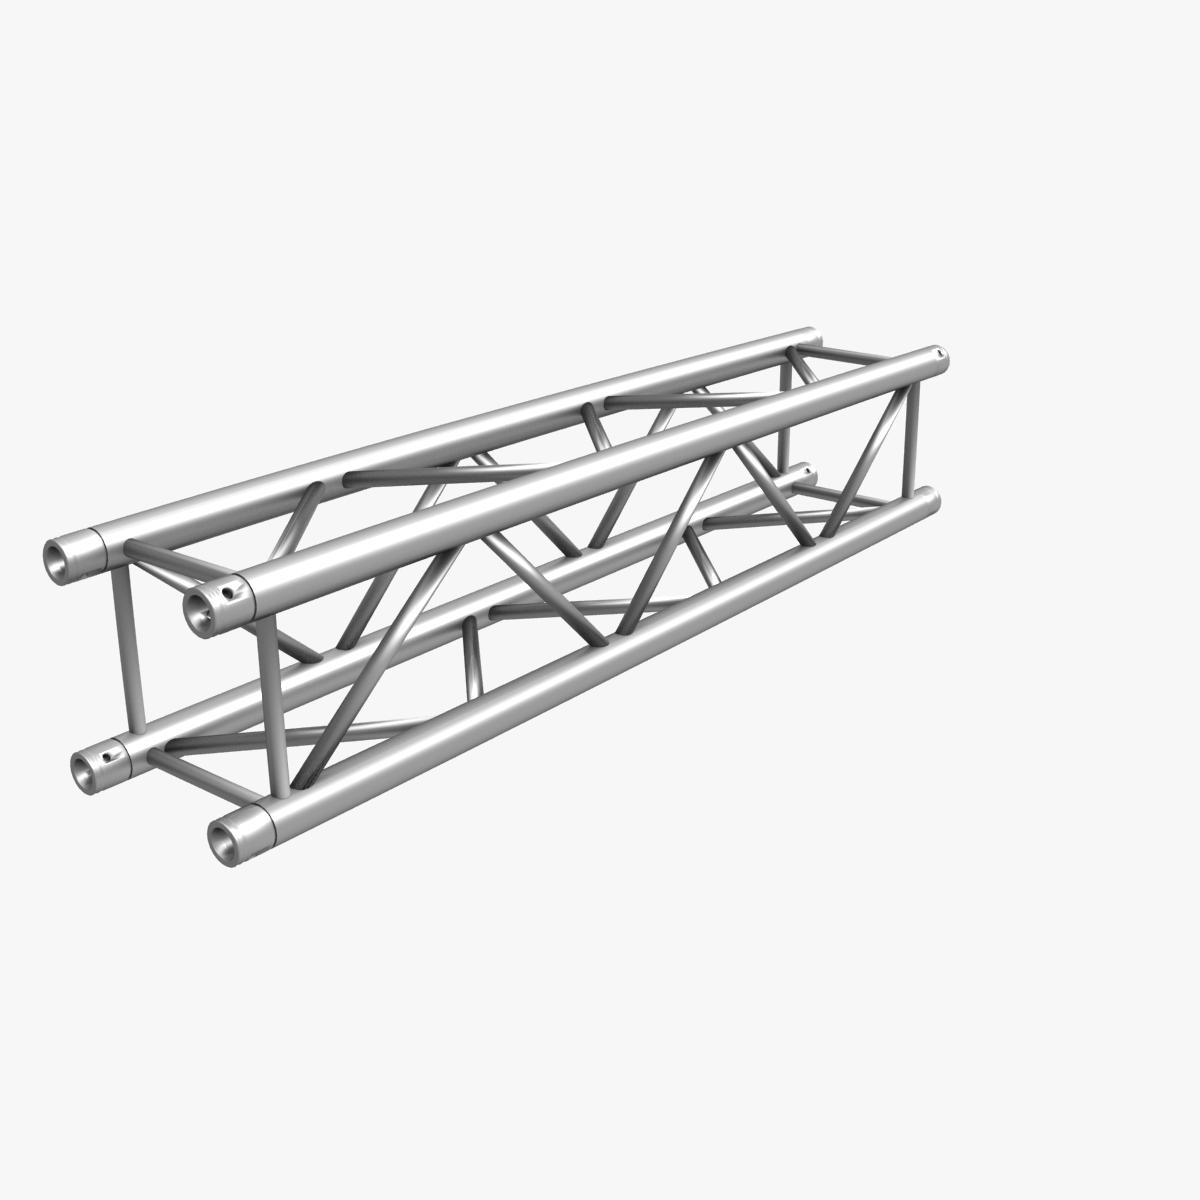 square truss standard (collection 24 modular) 3d model 3ds max dxf fbx c4d dae  texture obj 216331